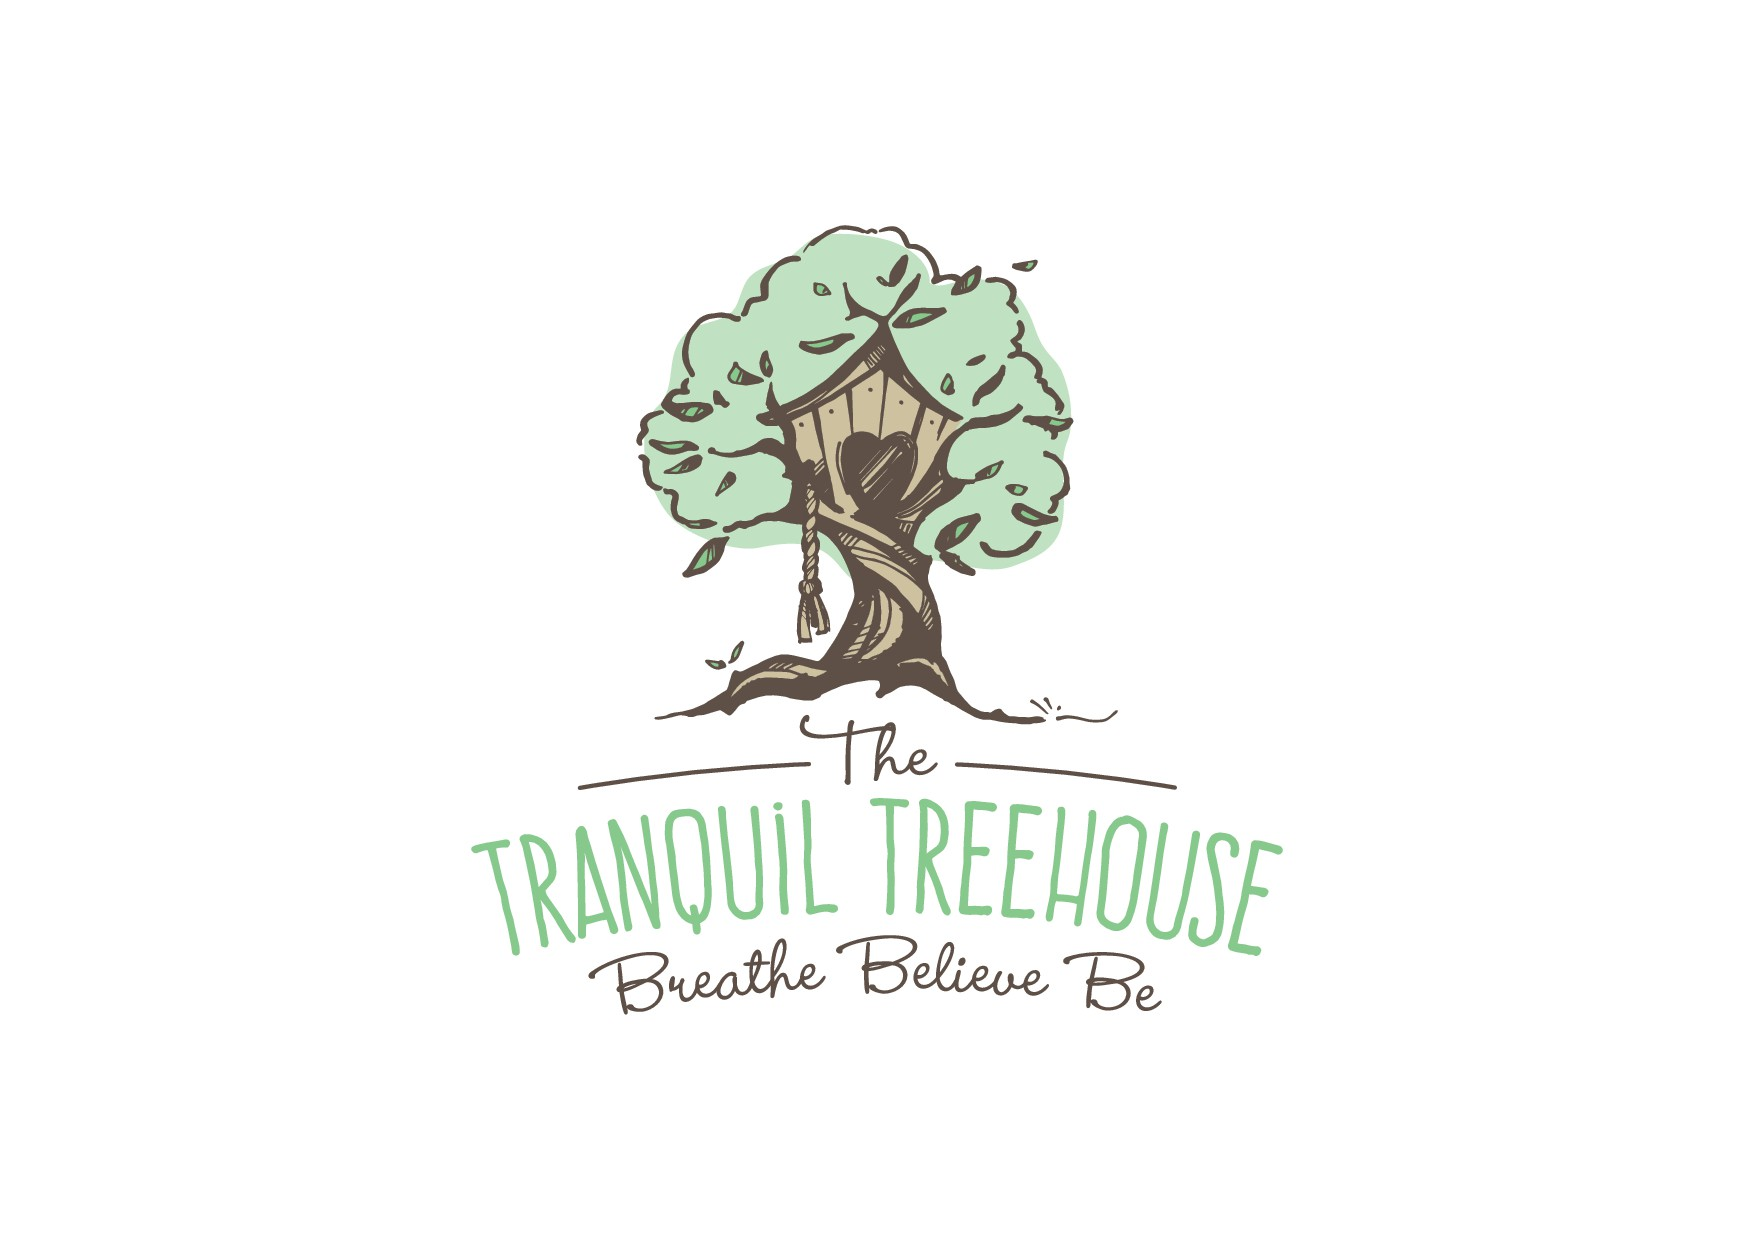 Blind contest! Create a logo and website for children's yoga organisation The Tranquil Treehouse